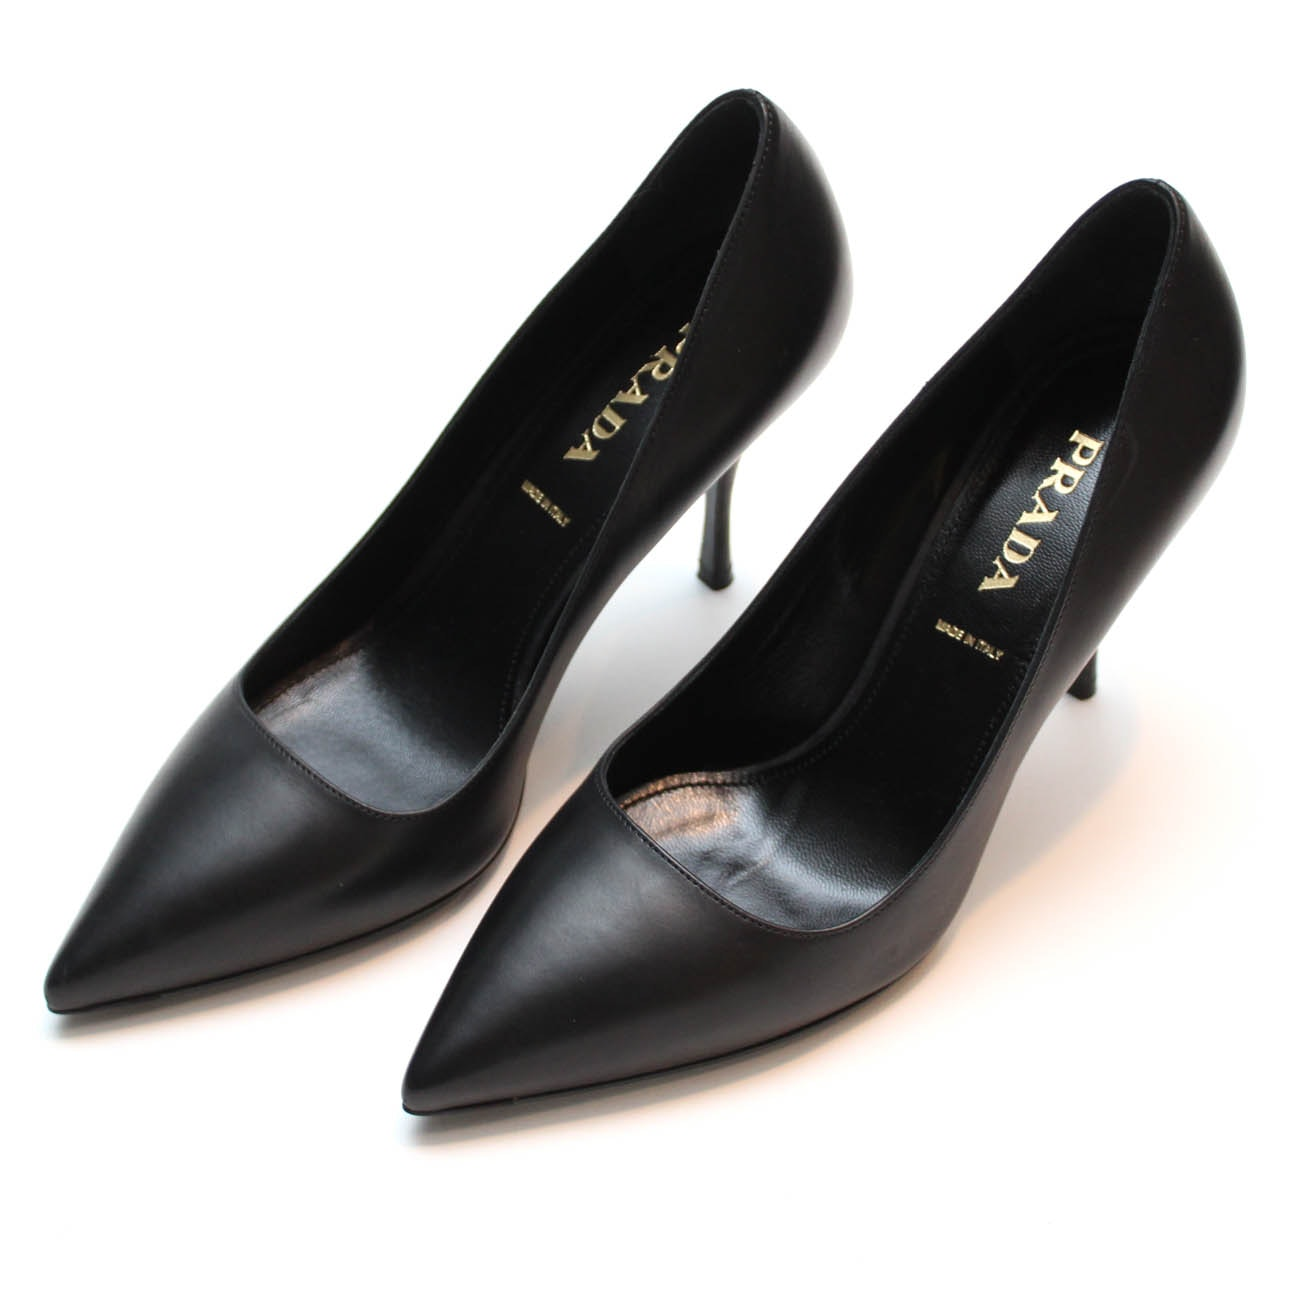 Prada Black Leather Heels